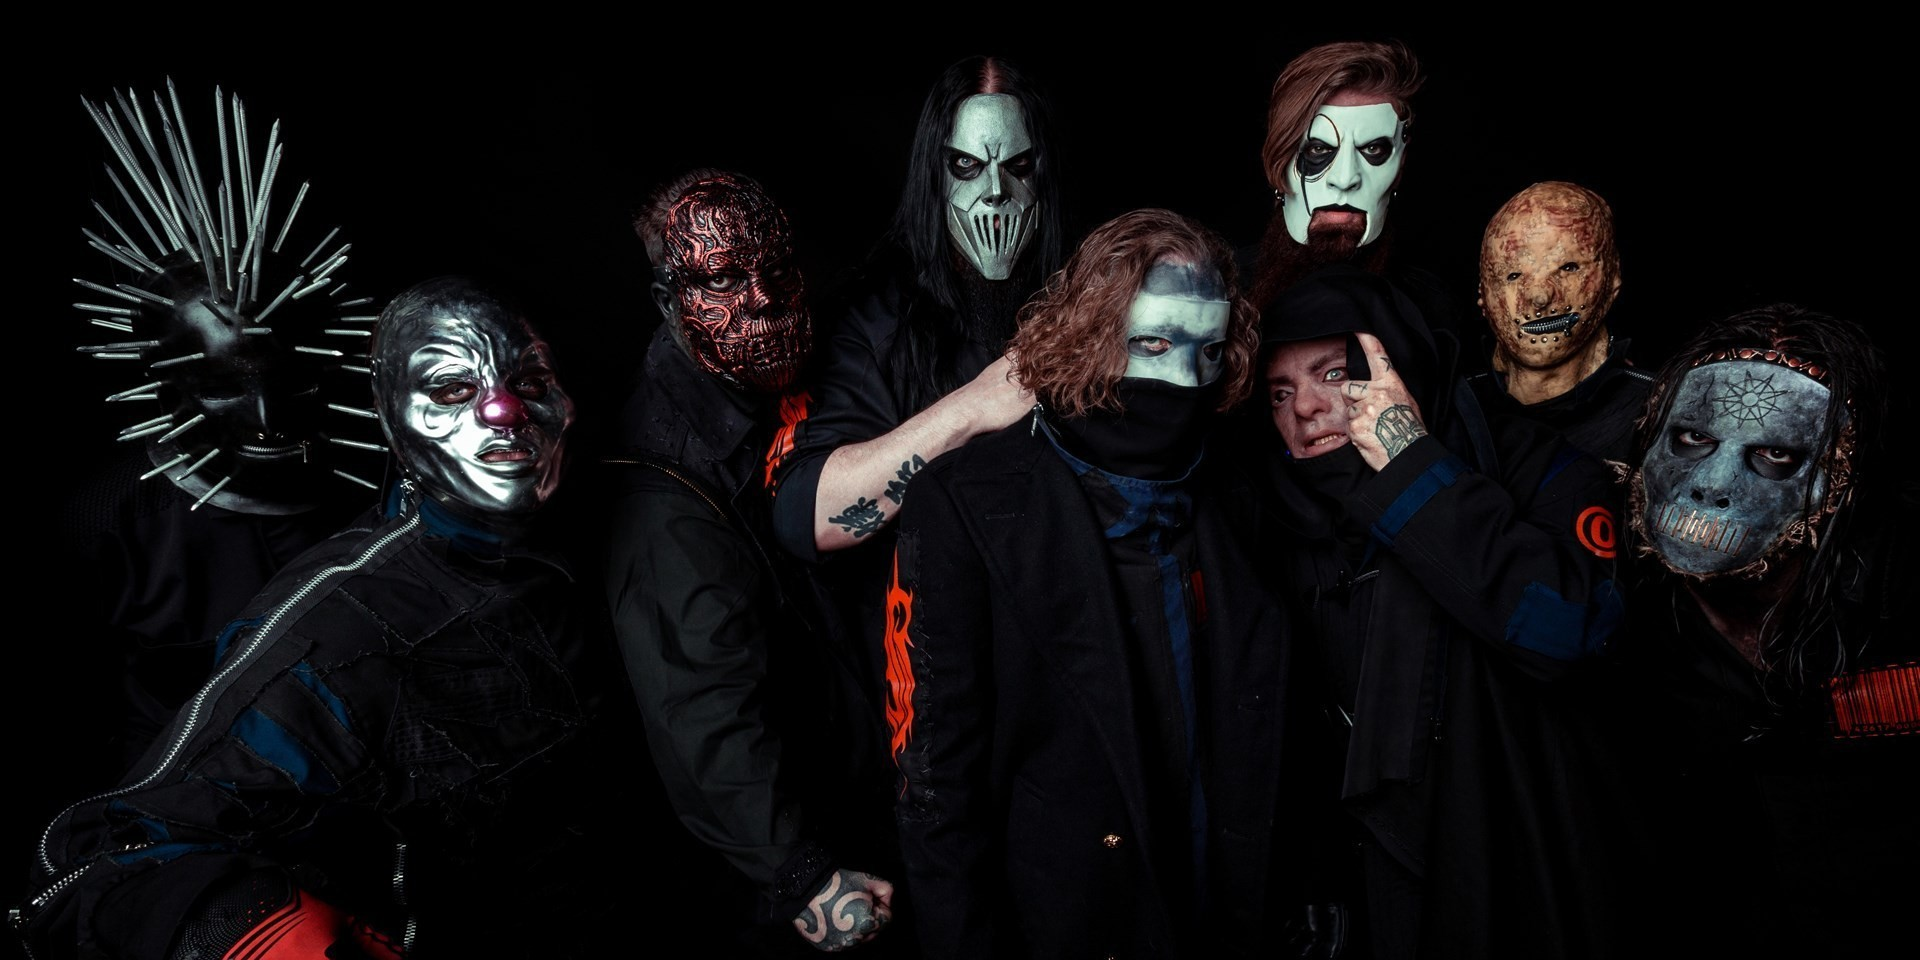 Slipknot announces Knotfest Japan for 2020 – Slipknot, Korn, Anthrax and more to perform